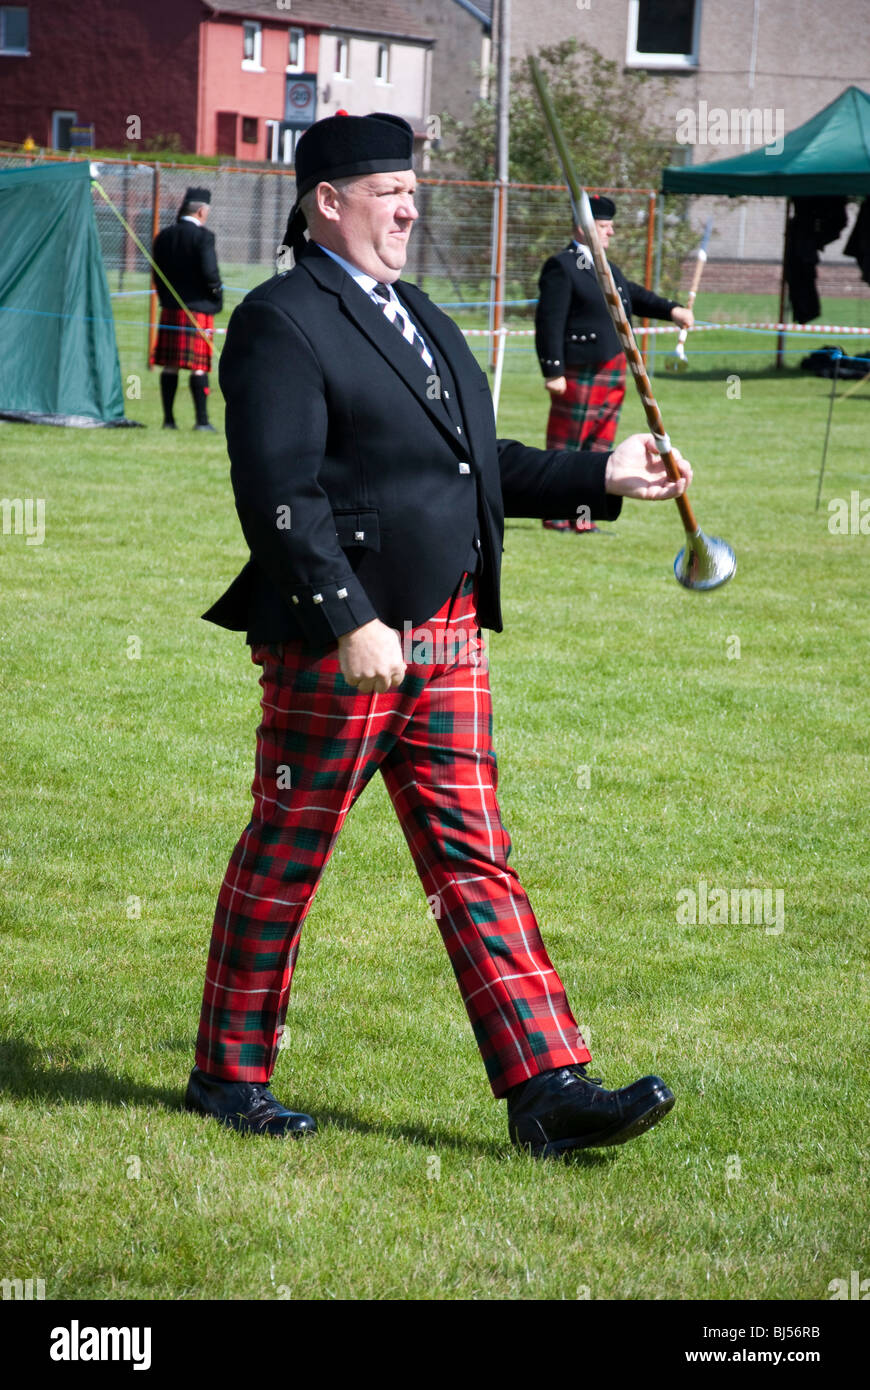 Drum Major Stock Photos & Drum Major Stock Images - Alamy